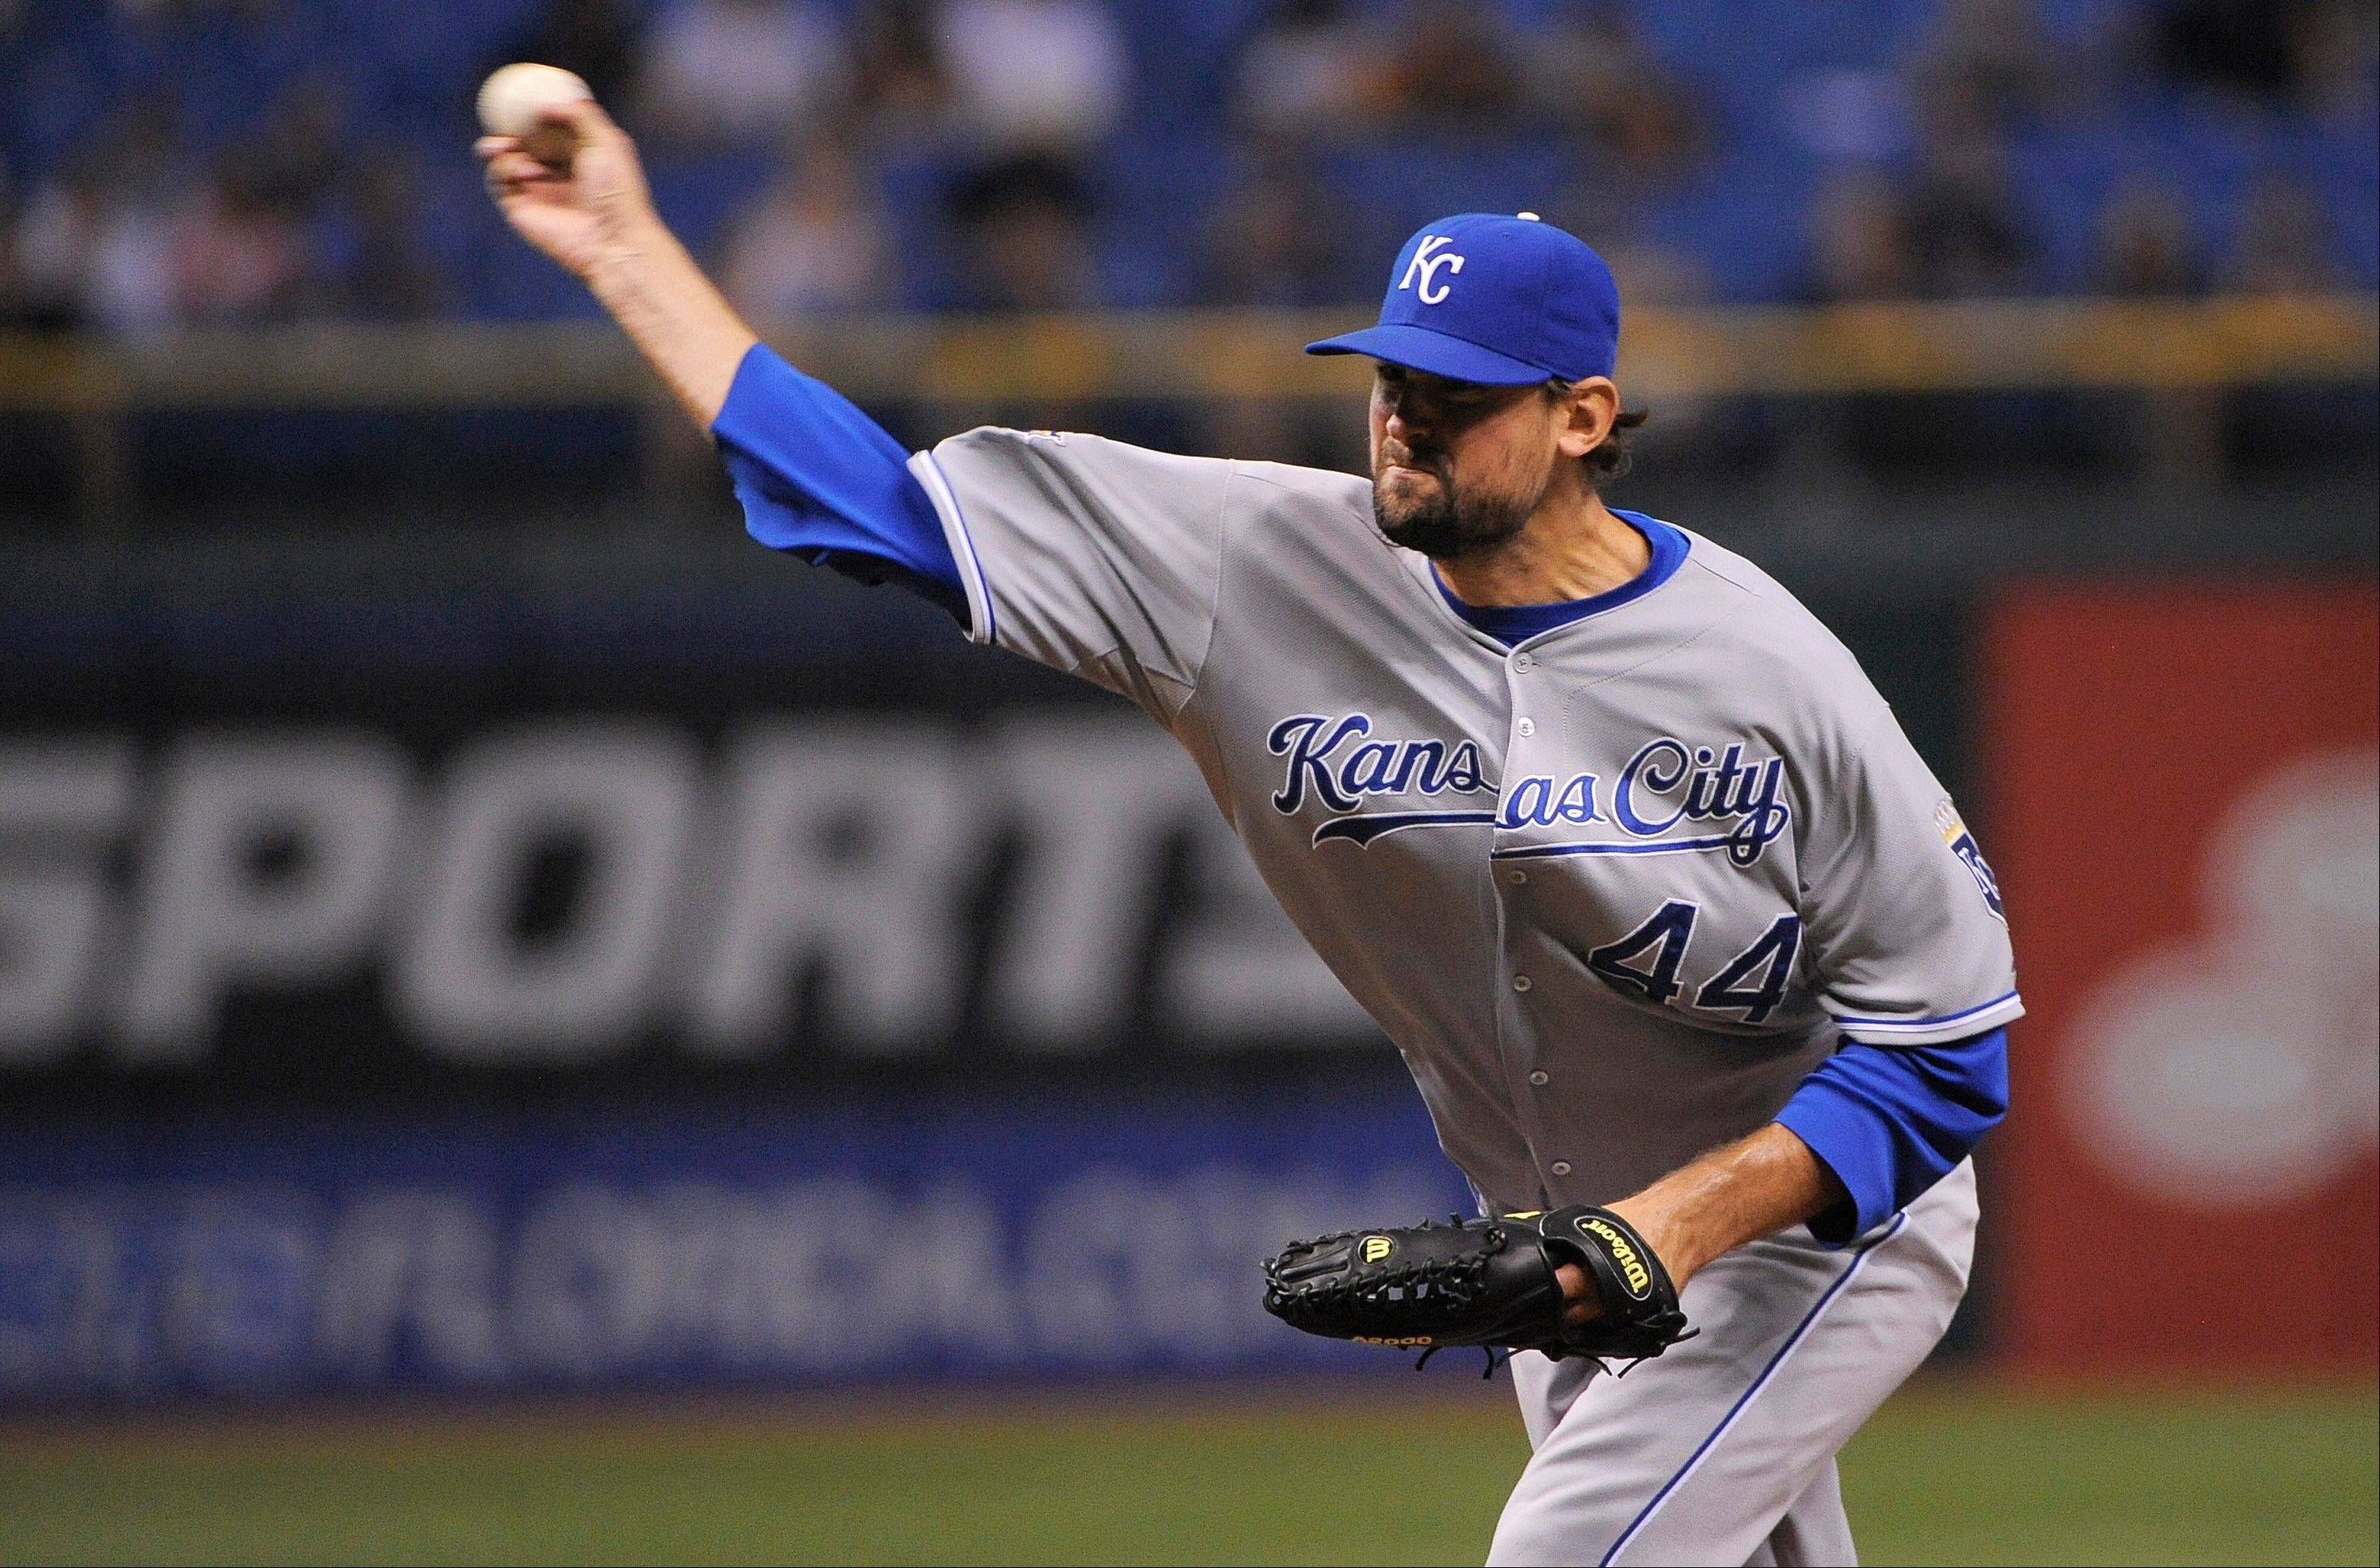 Kansas City Royals starting pitcher Luke Hochevar delivers to the Tampa Bay Rays during the second inning of Tuesday's game in St. Petersburg, Fla.